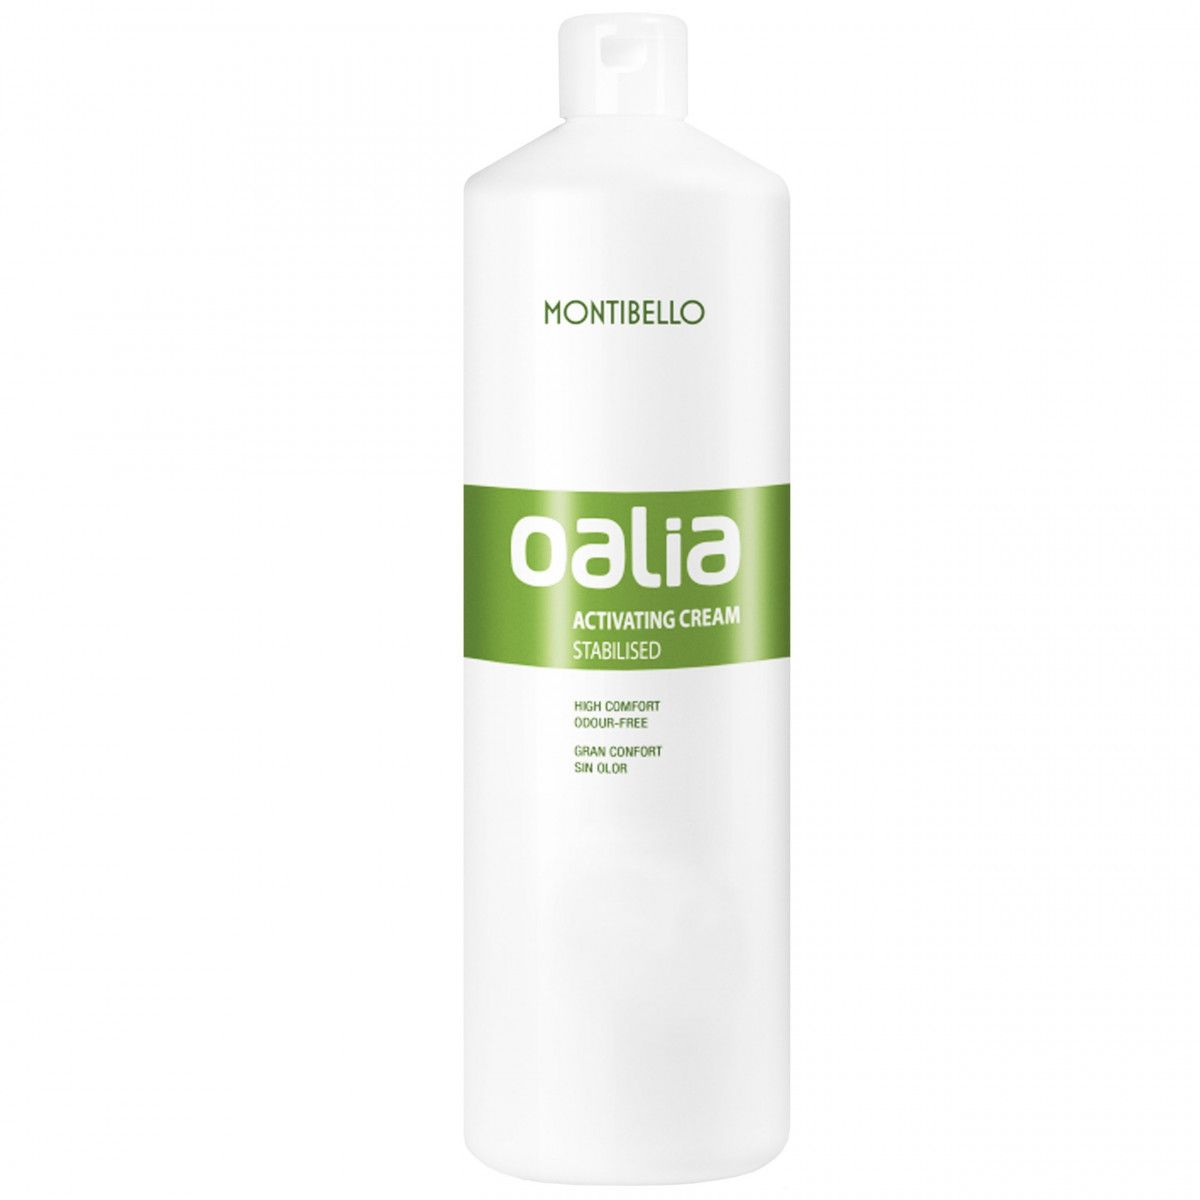 Montibello OALIA woda 1000ml aktywator do farb